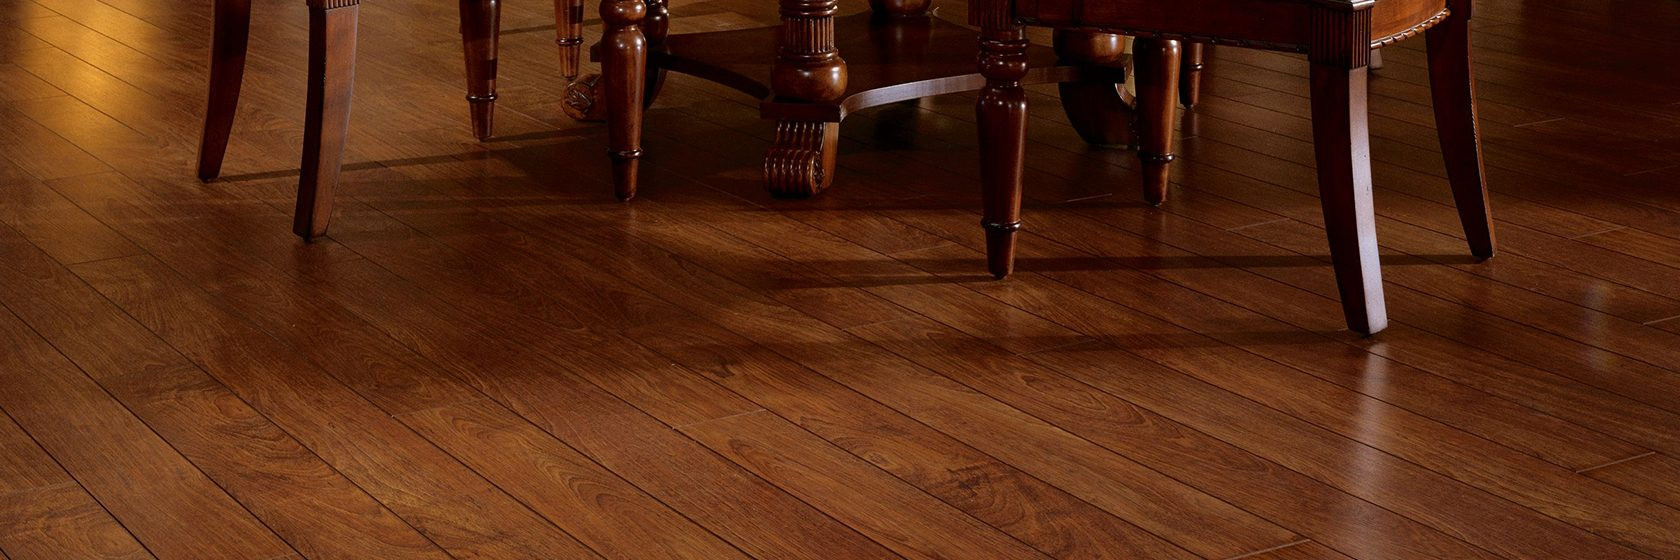 buy direct hardwood flooring of laminate exotic olive ash l8708 throughout hero l 1680 560